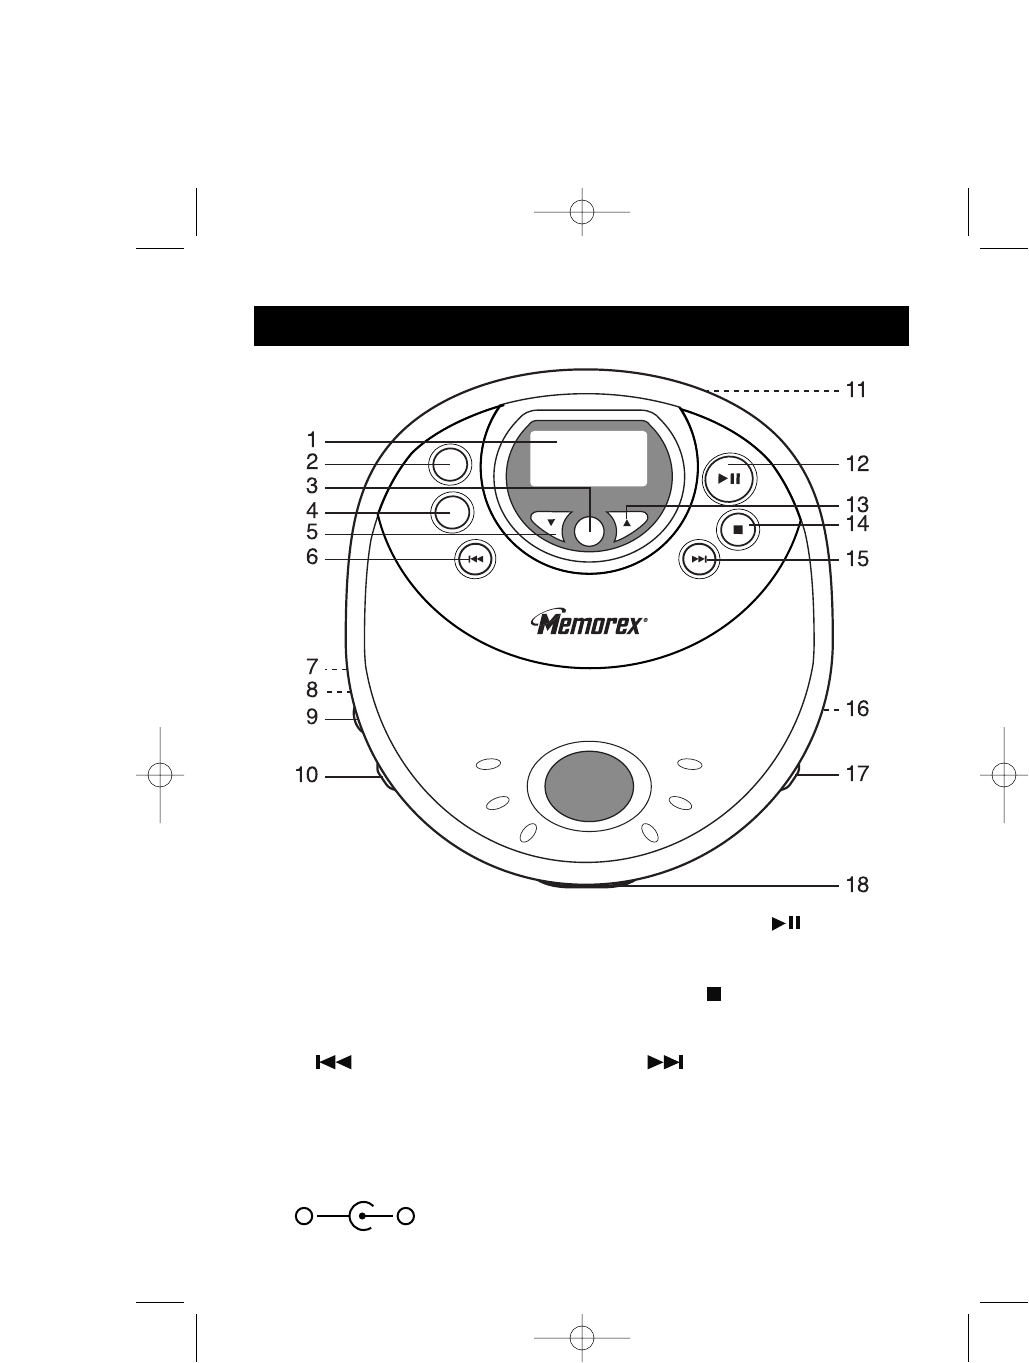 Page 5 of Memorex CD Player MD6885 User Guide